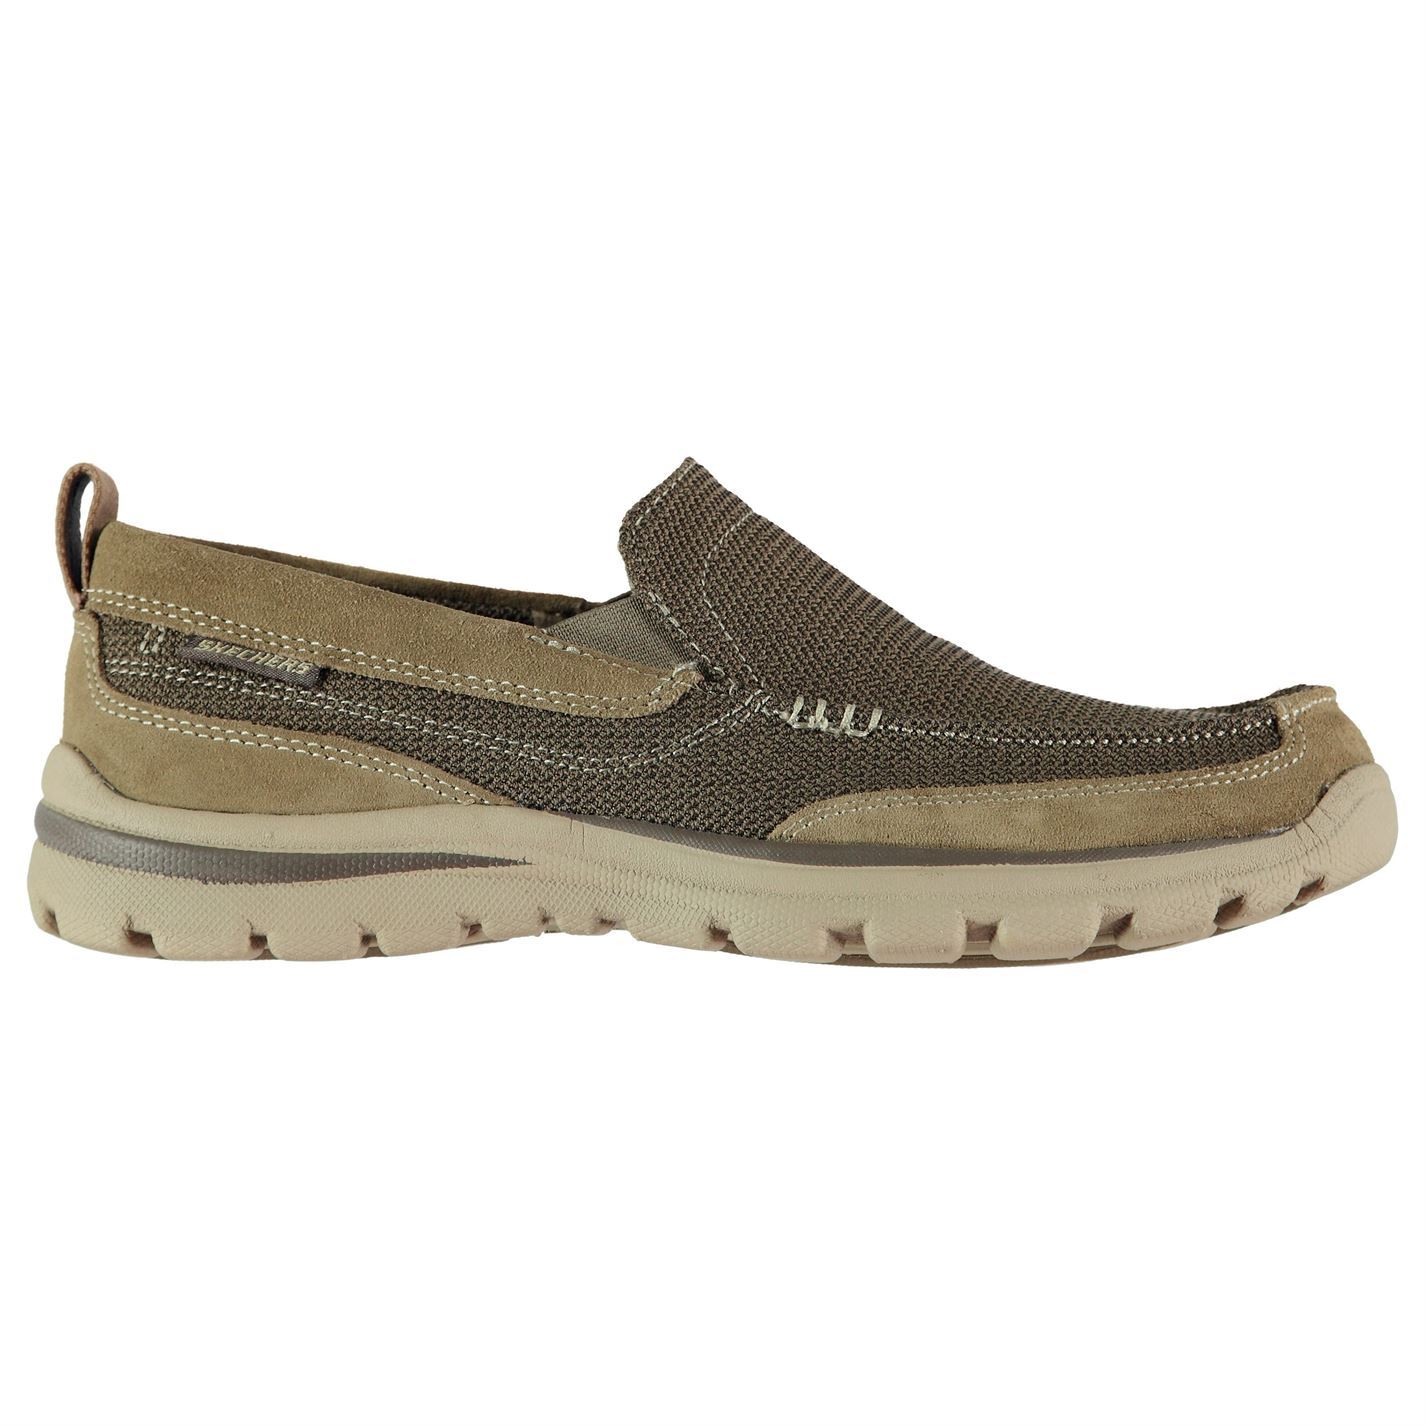 Skechers Mens Superior Milford Shoes Casual Slip On Lightweight Memory Foam